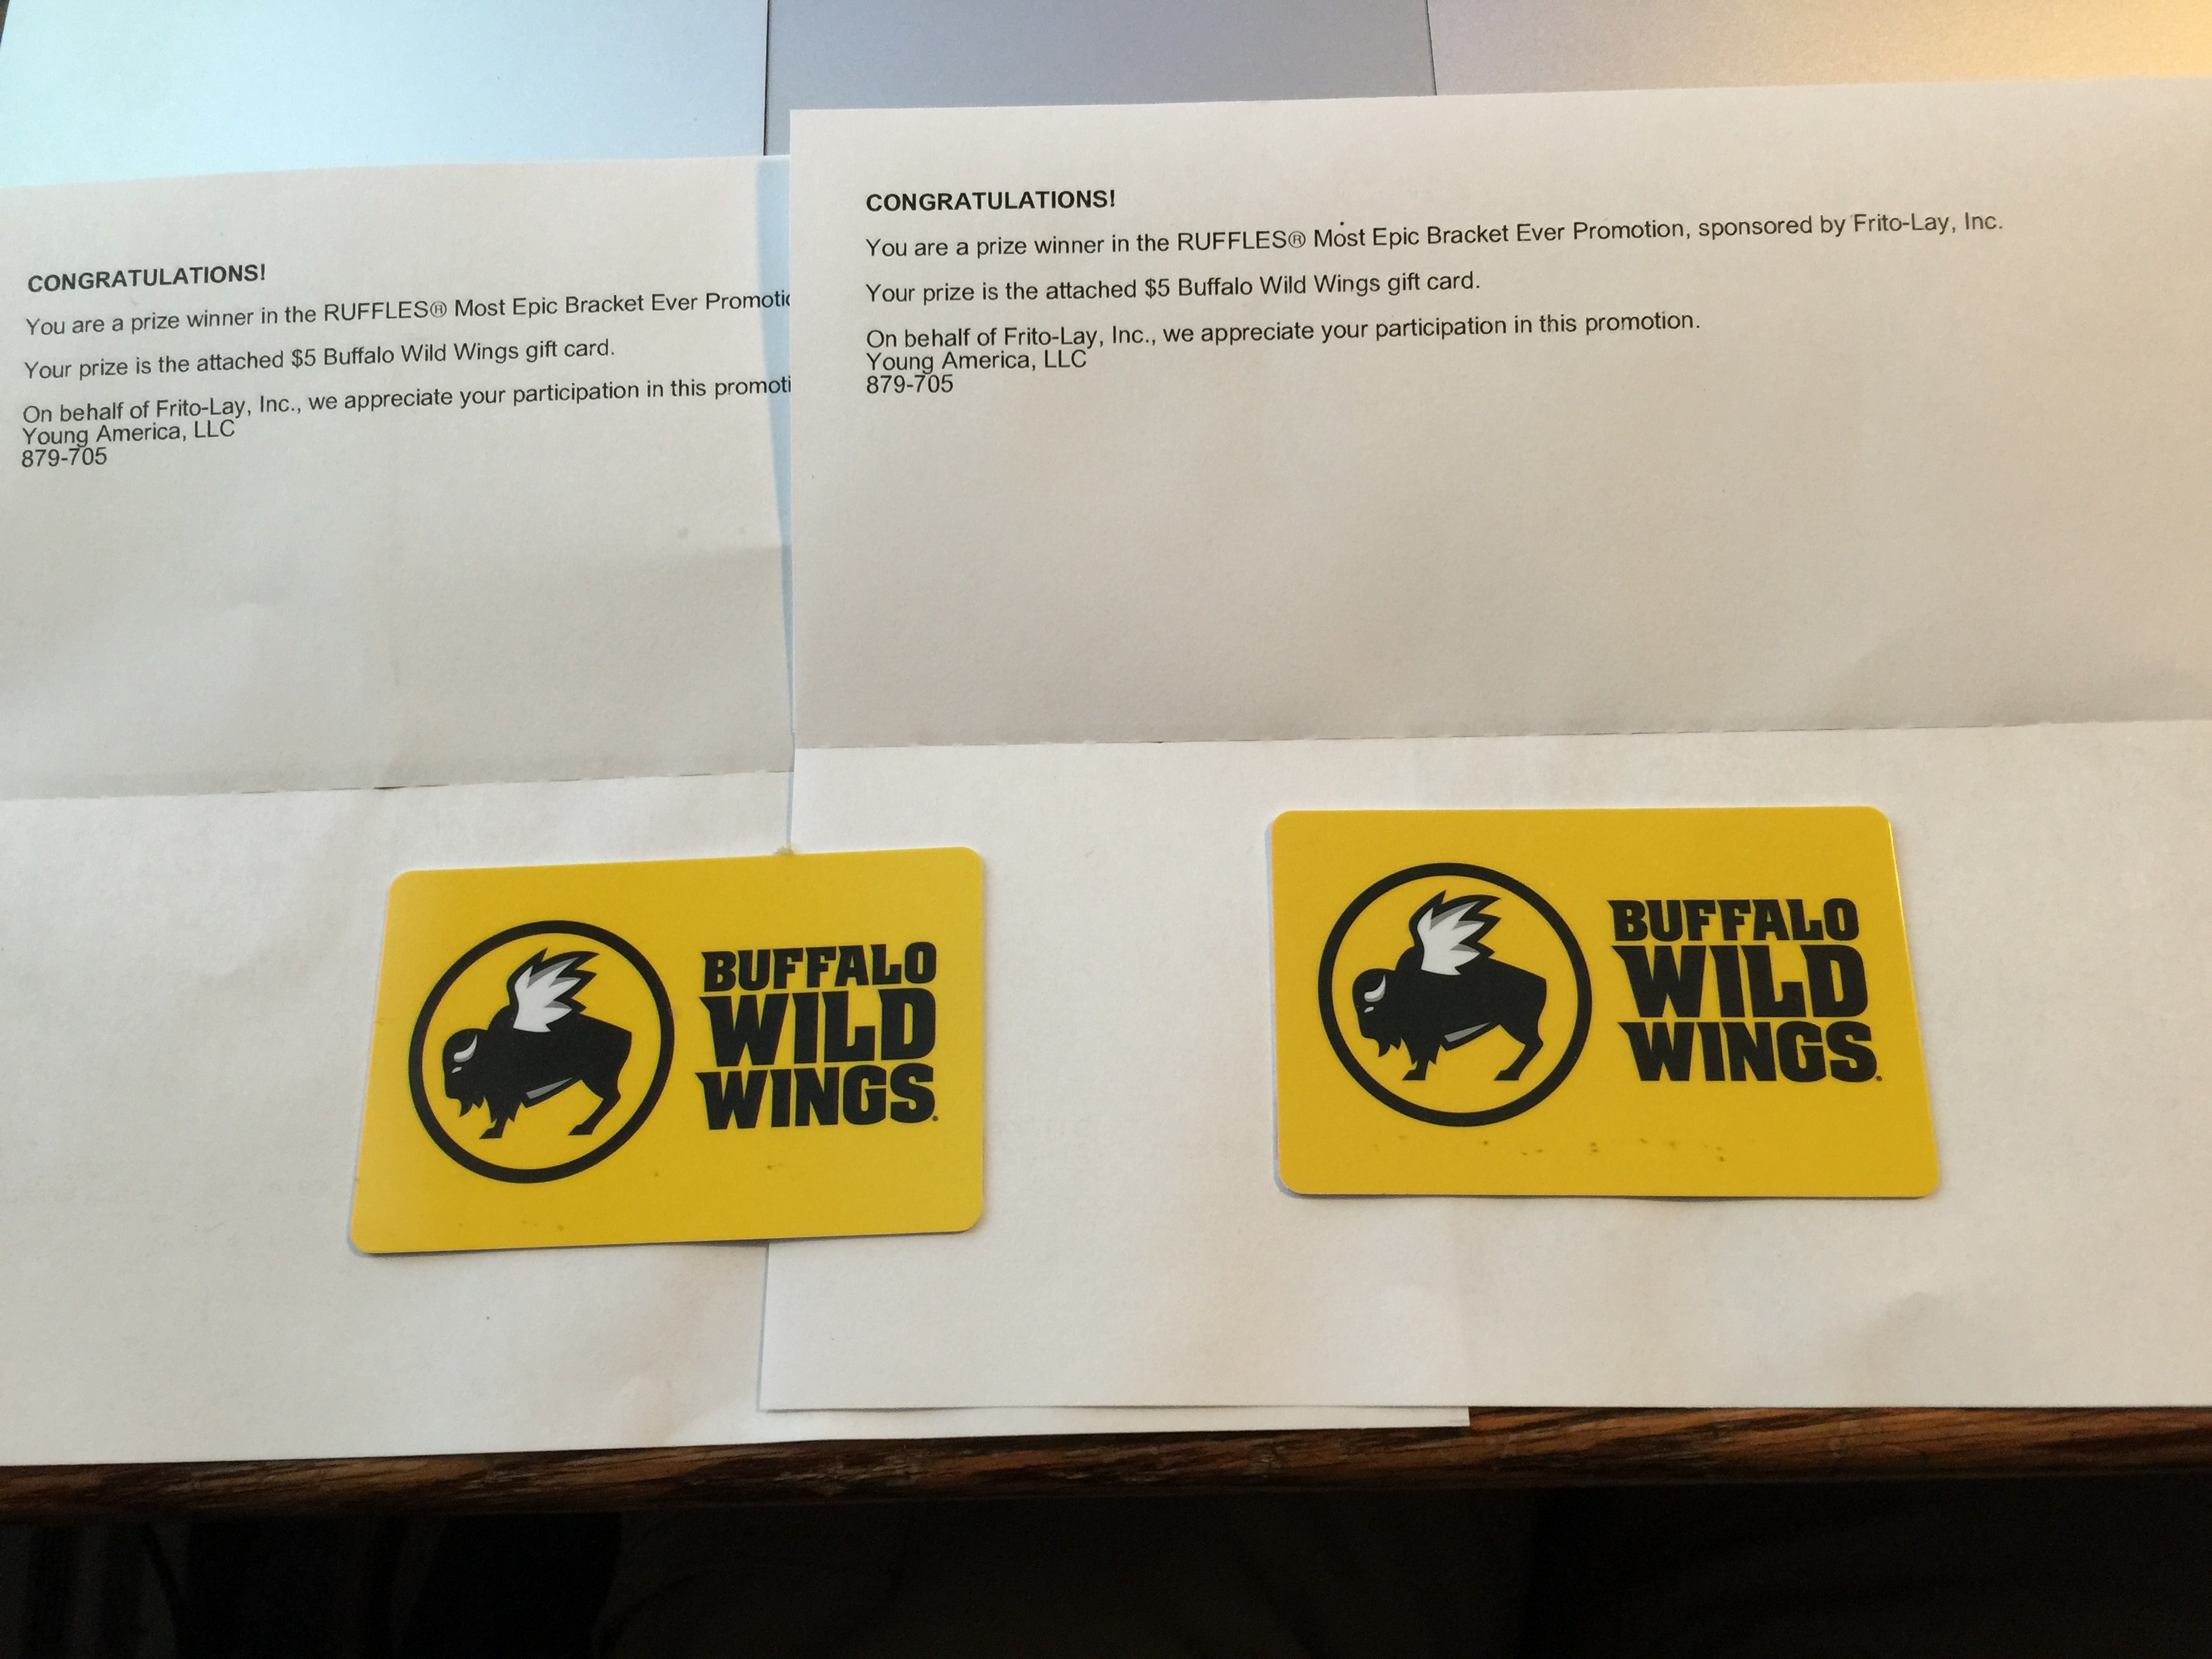 buffalo wild wings gift card promotion 10 buffalo wild wings gift card win 1347